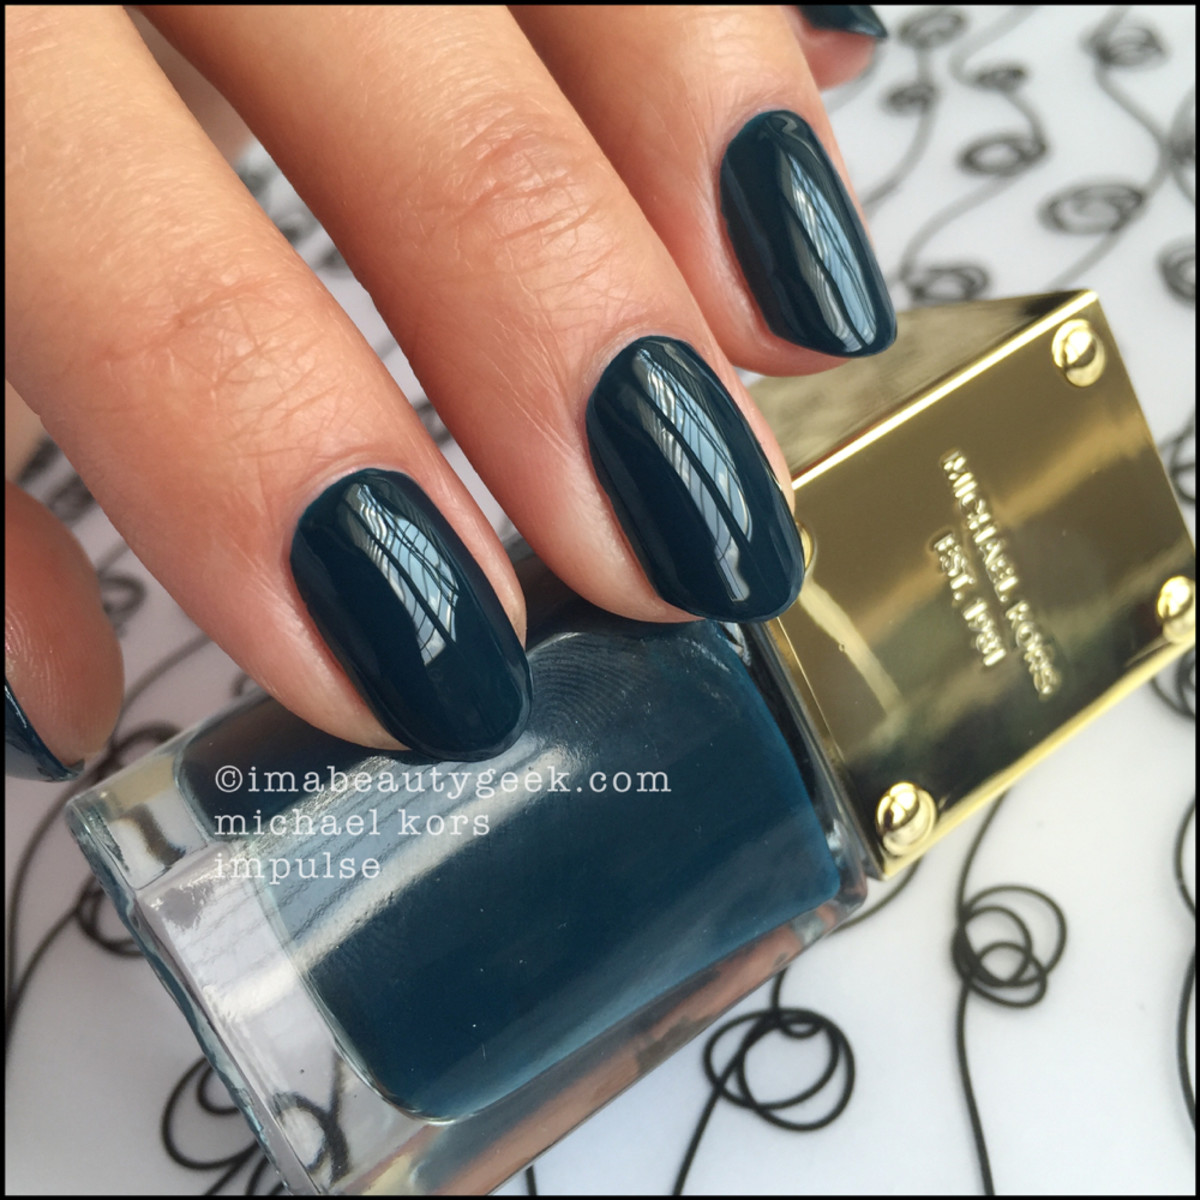 Michael Kors Impulse Nail Polish Swatch Beautygeeks